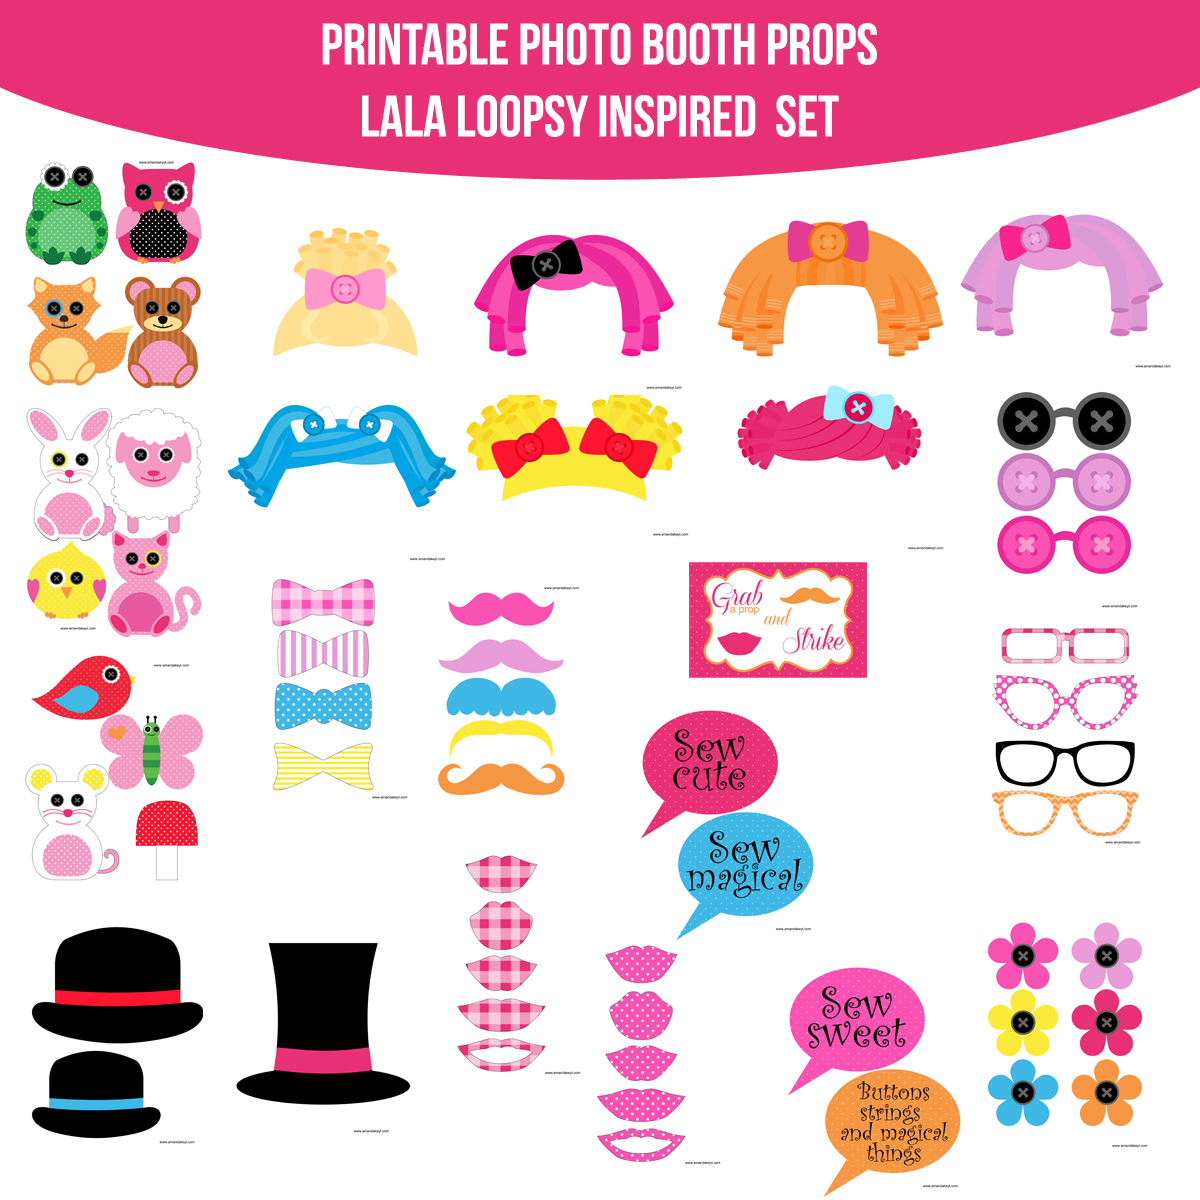 See the Set - To View The Whole Baby Doll Lala Loopsy Inspired Printable Photo Booth Prop Set Click Here